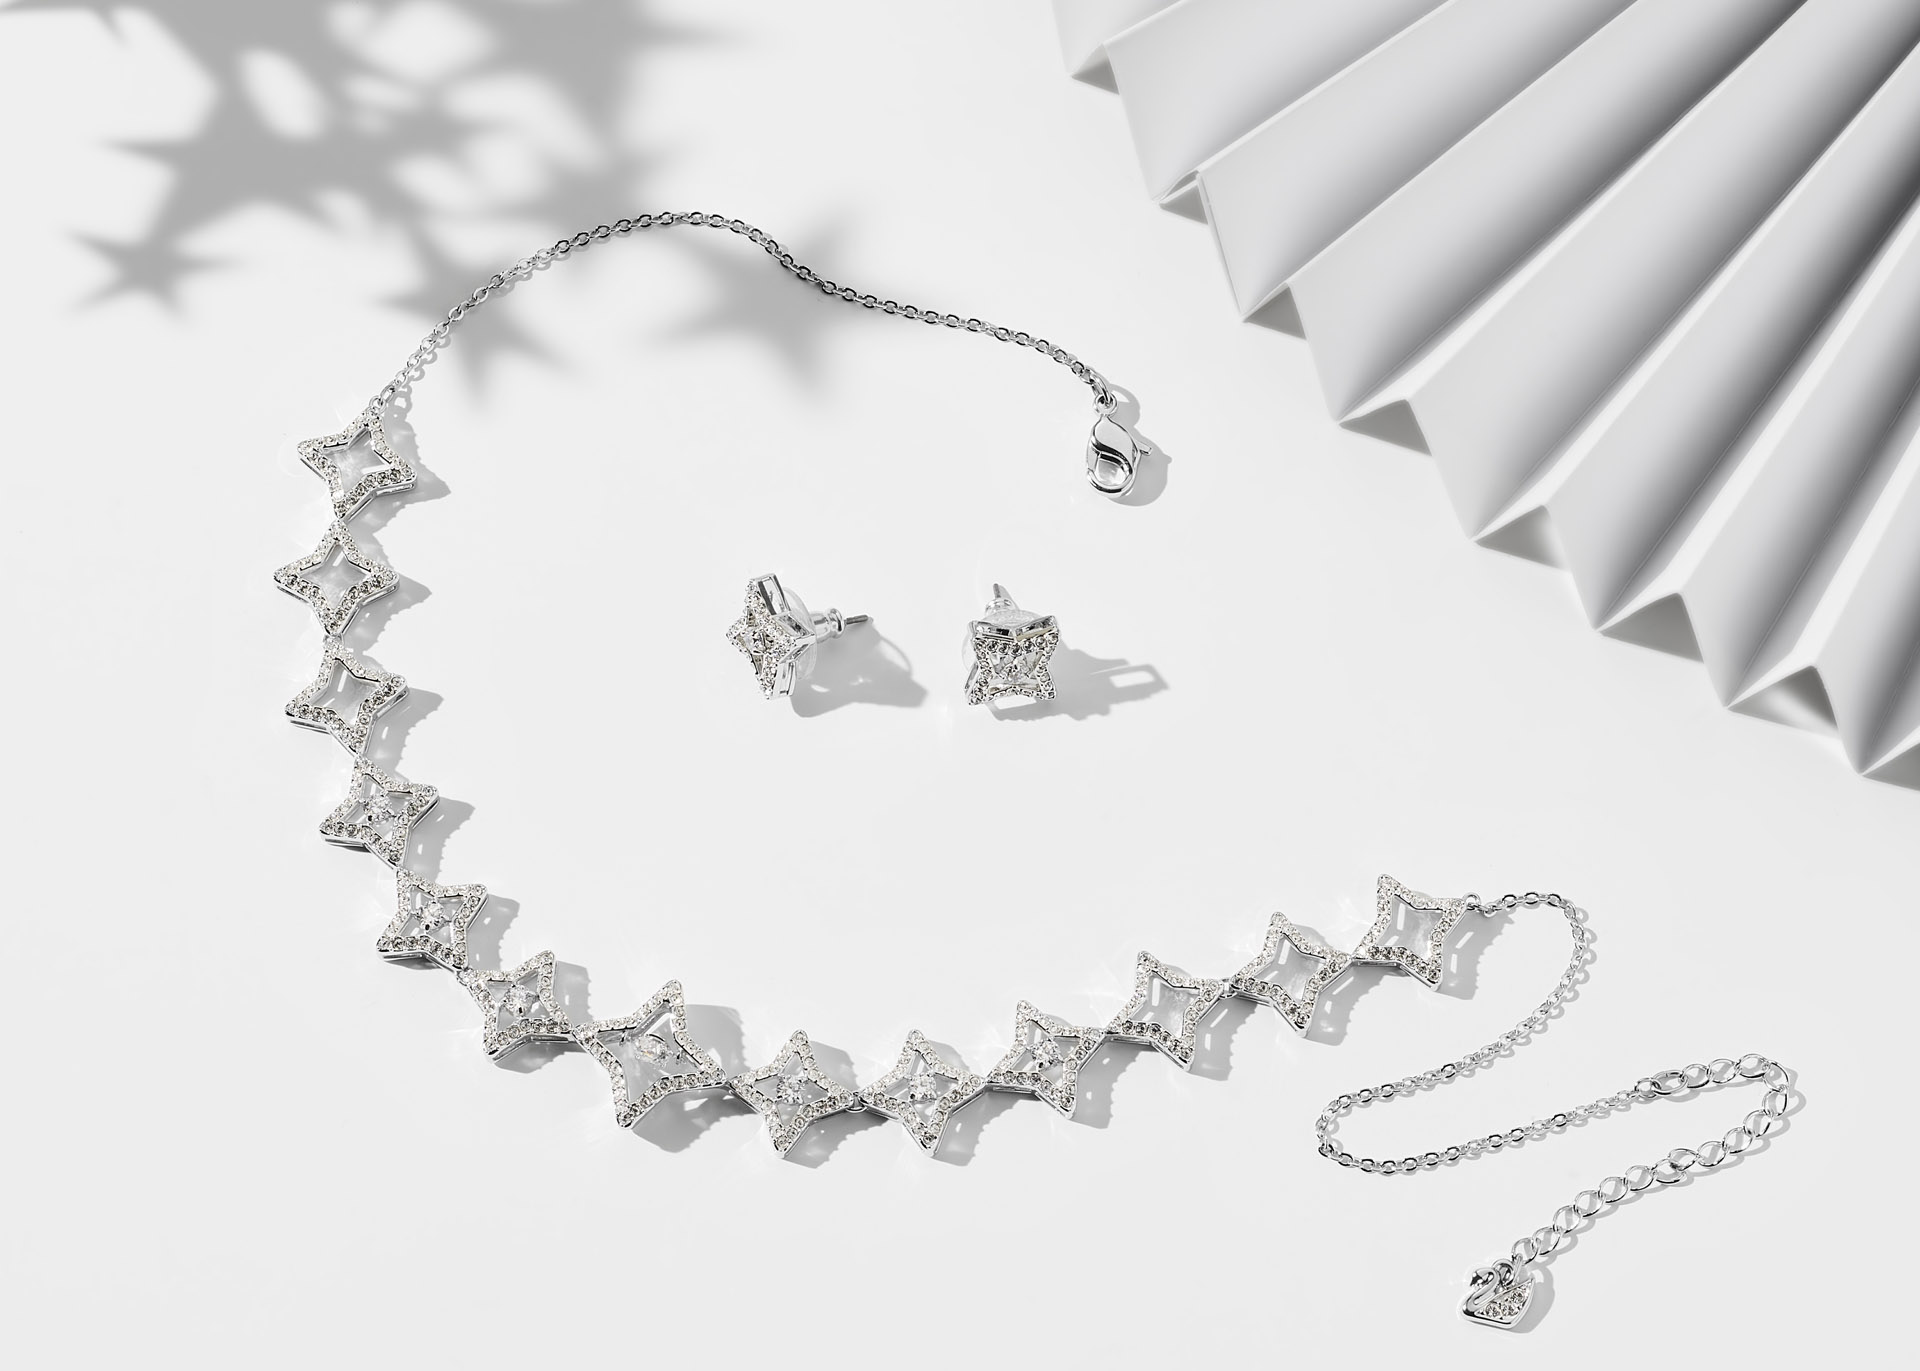 a915b213ee880 Christmas Jewellery Gift Idea: Day 11 - Sparkling Dance Star Set